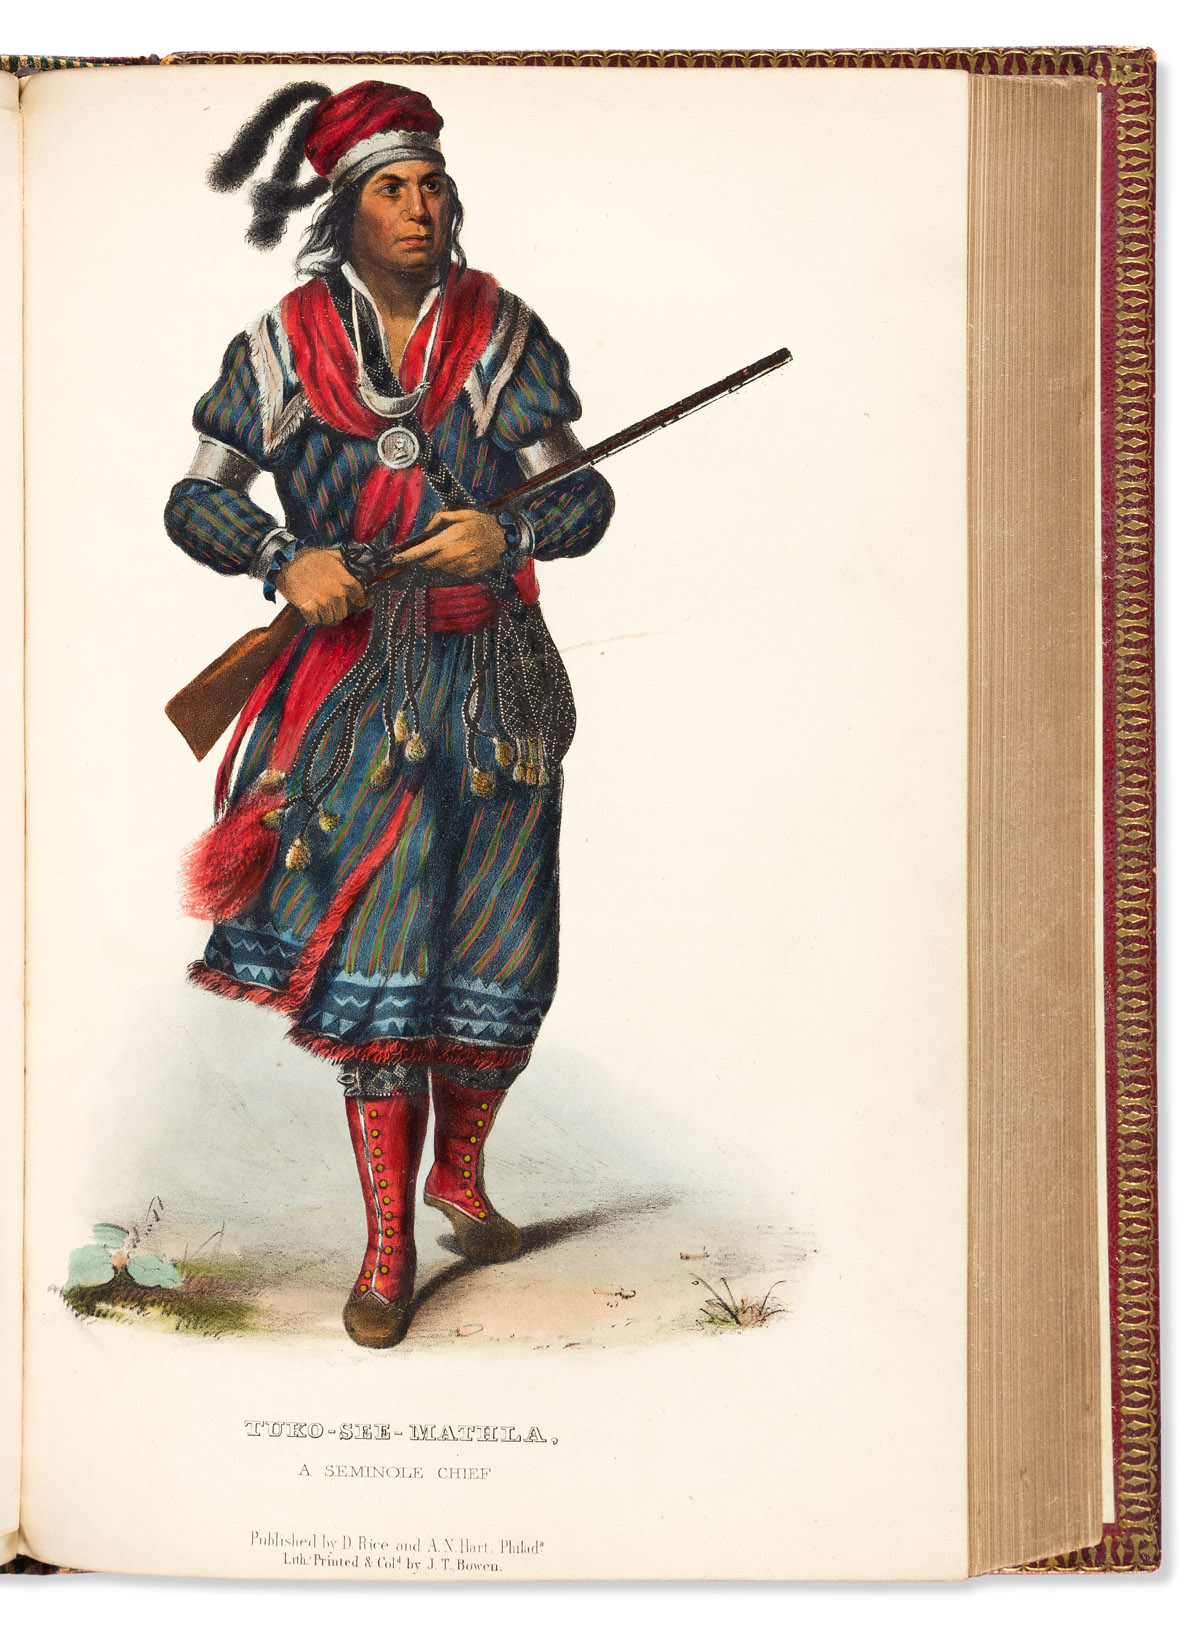 (AMERICAN INDIANS.) Thomas McKenney and James Hall. History of the Indian Tribes of North America.